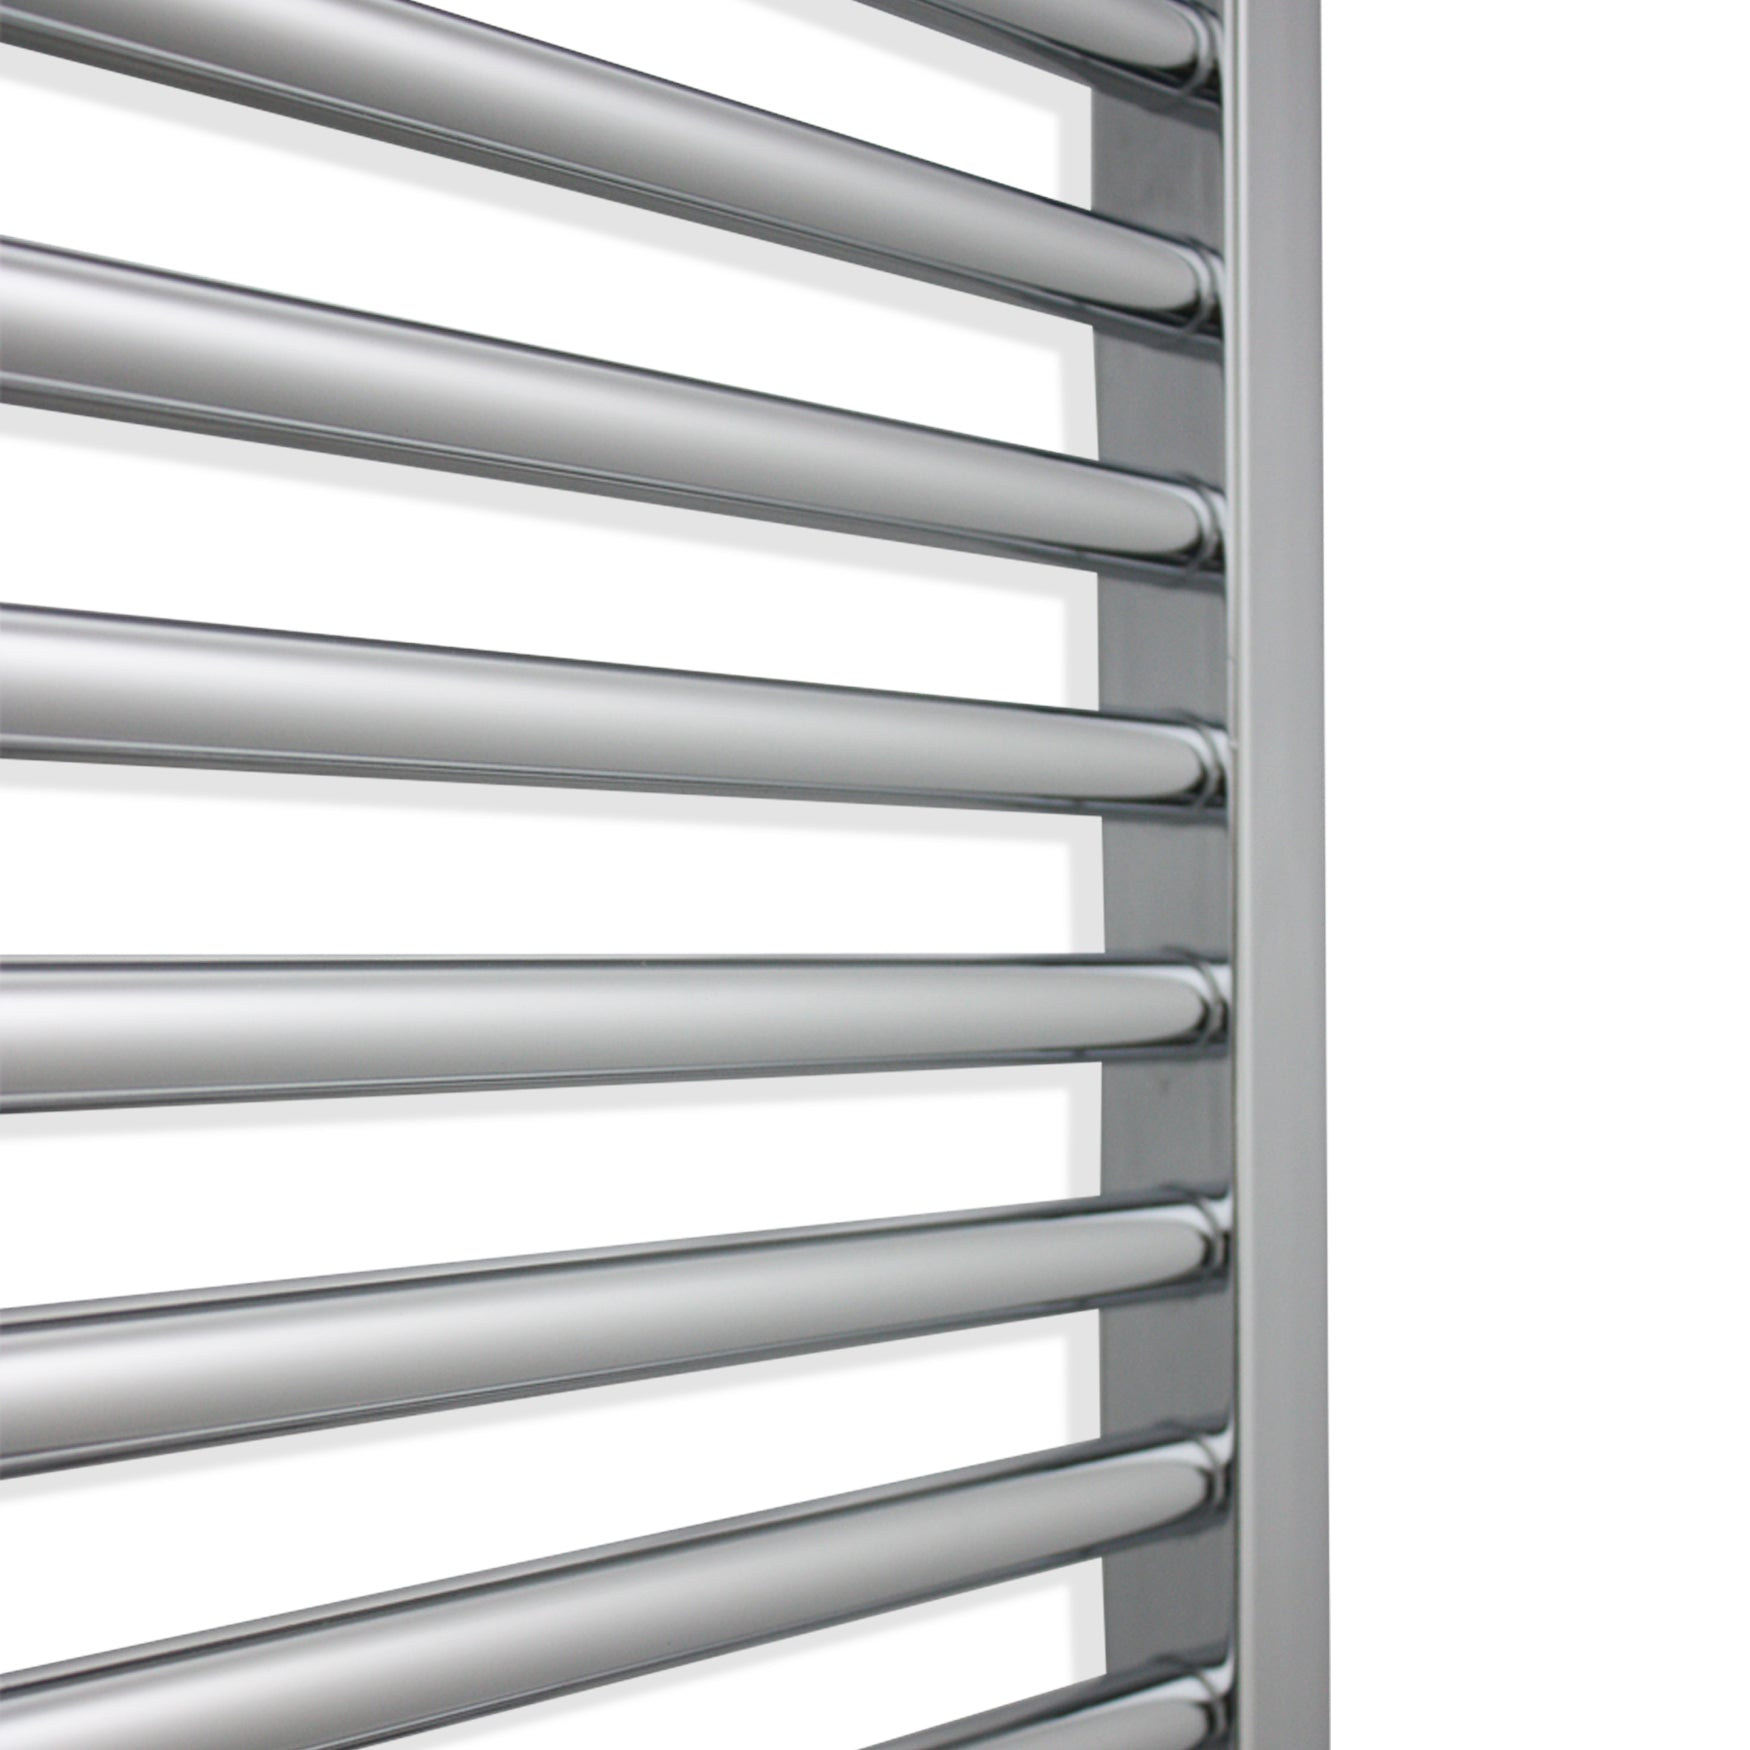 400mm Wide 800mm High Curved Chrome Heated Towel Rail Radiator HTR